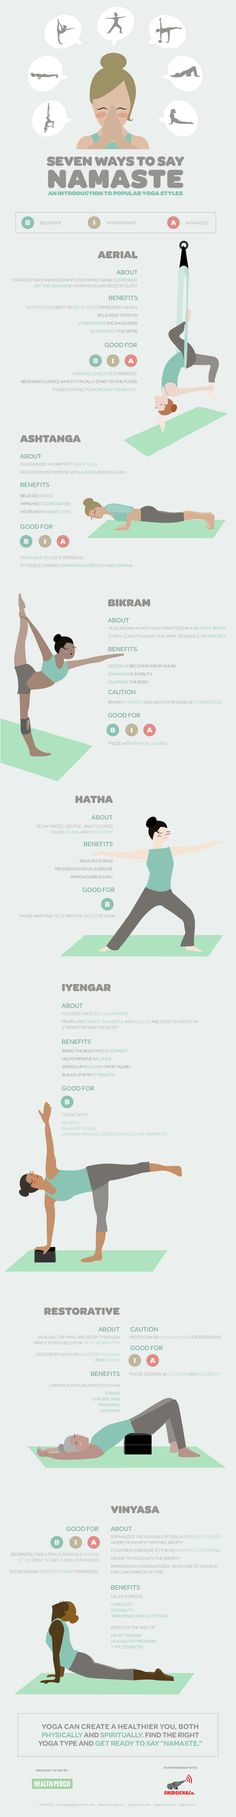 How to find out what style of yoga is for you. Thanks to Health Perch for this great infographic! #Fitness #Yoga #Namaste